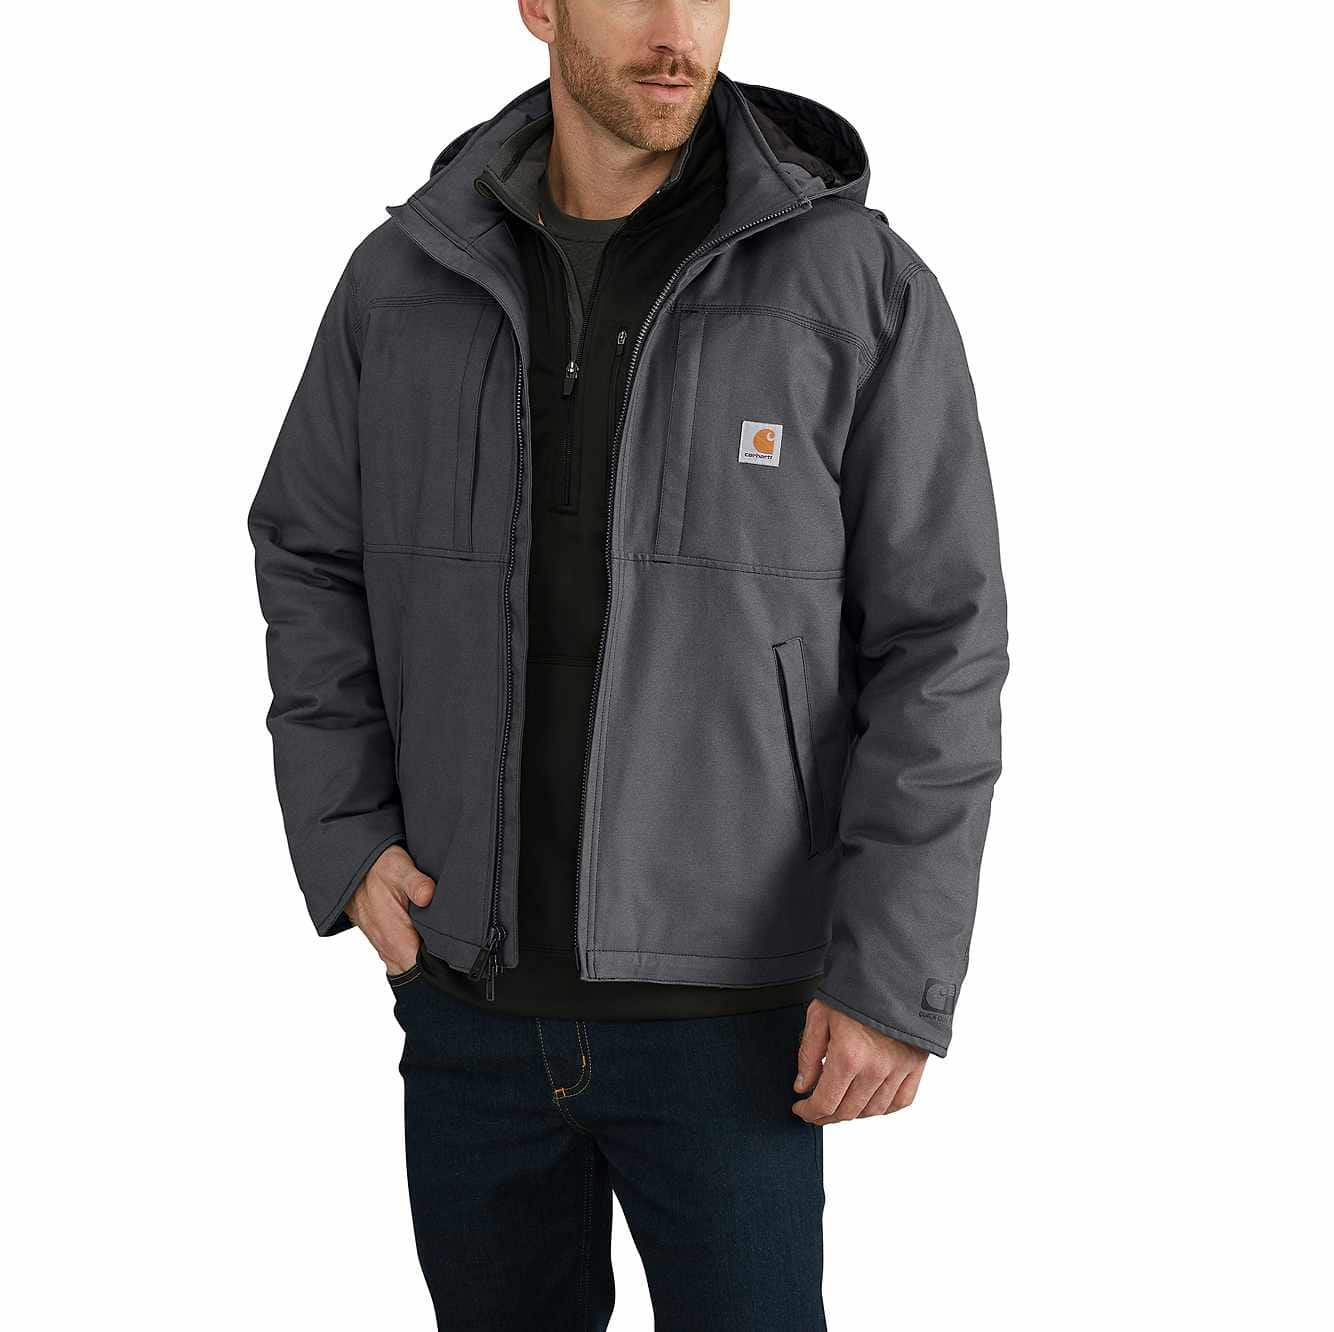 Picture of Full Swing® Cryder Jacket in Shadow